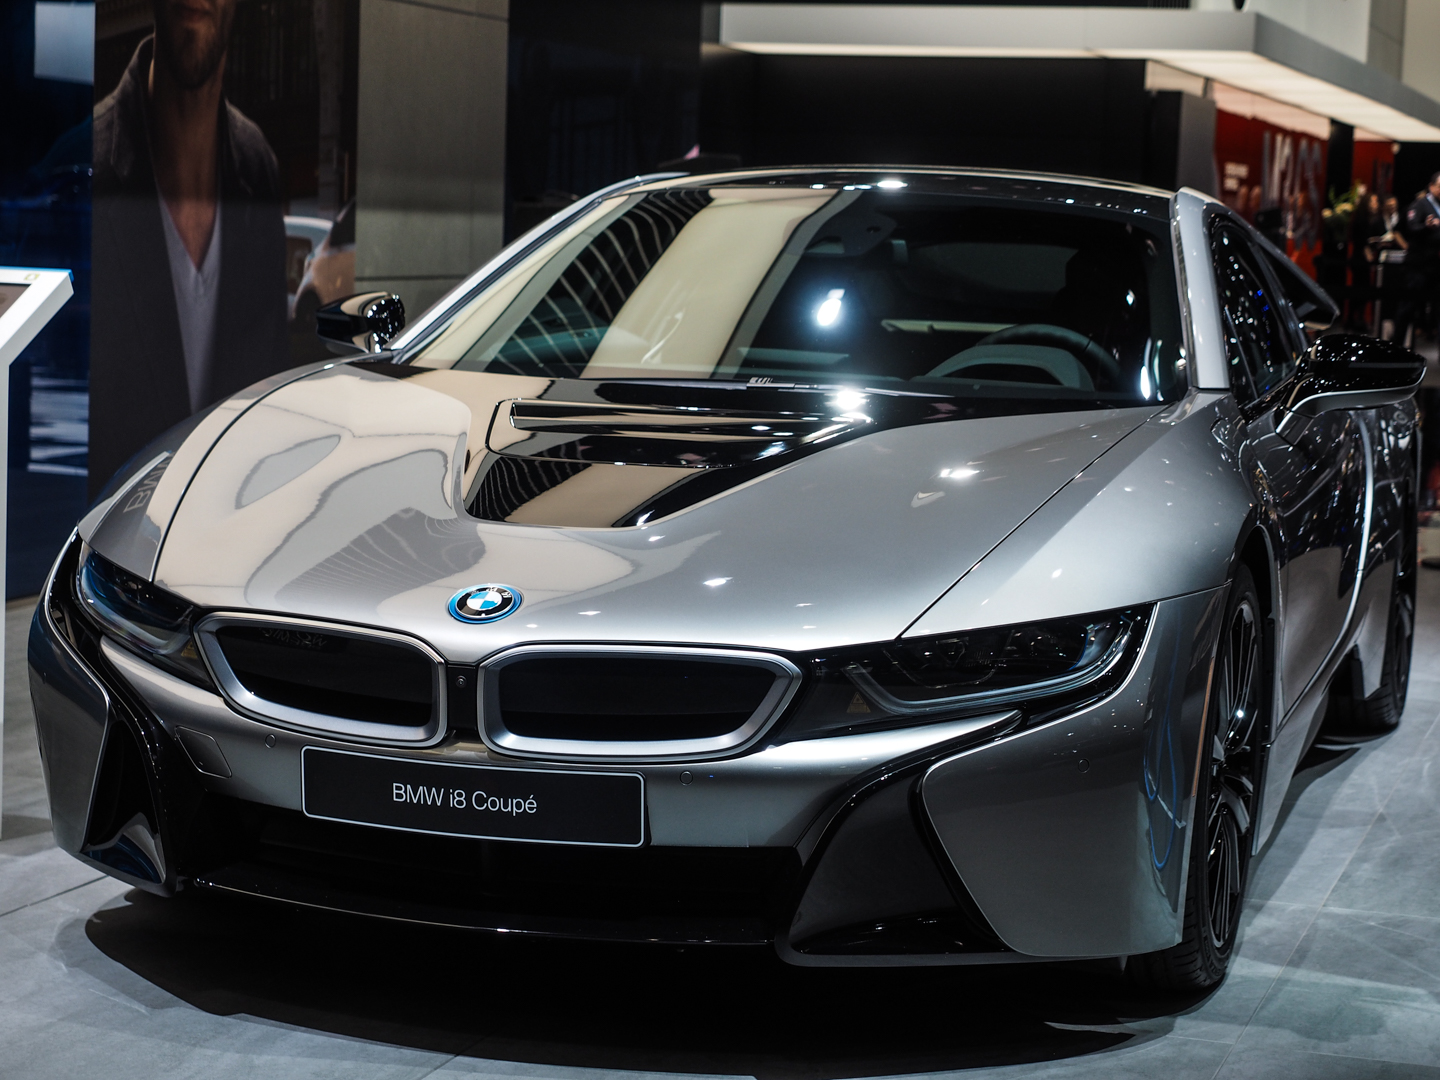 Naias Detroit 2018 Bmw I8 Facelift In Donington Grey